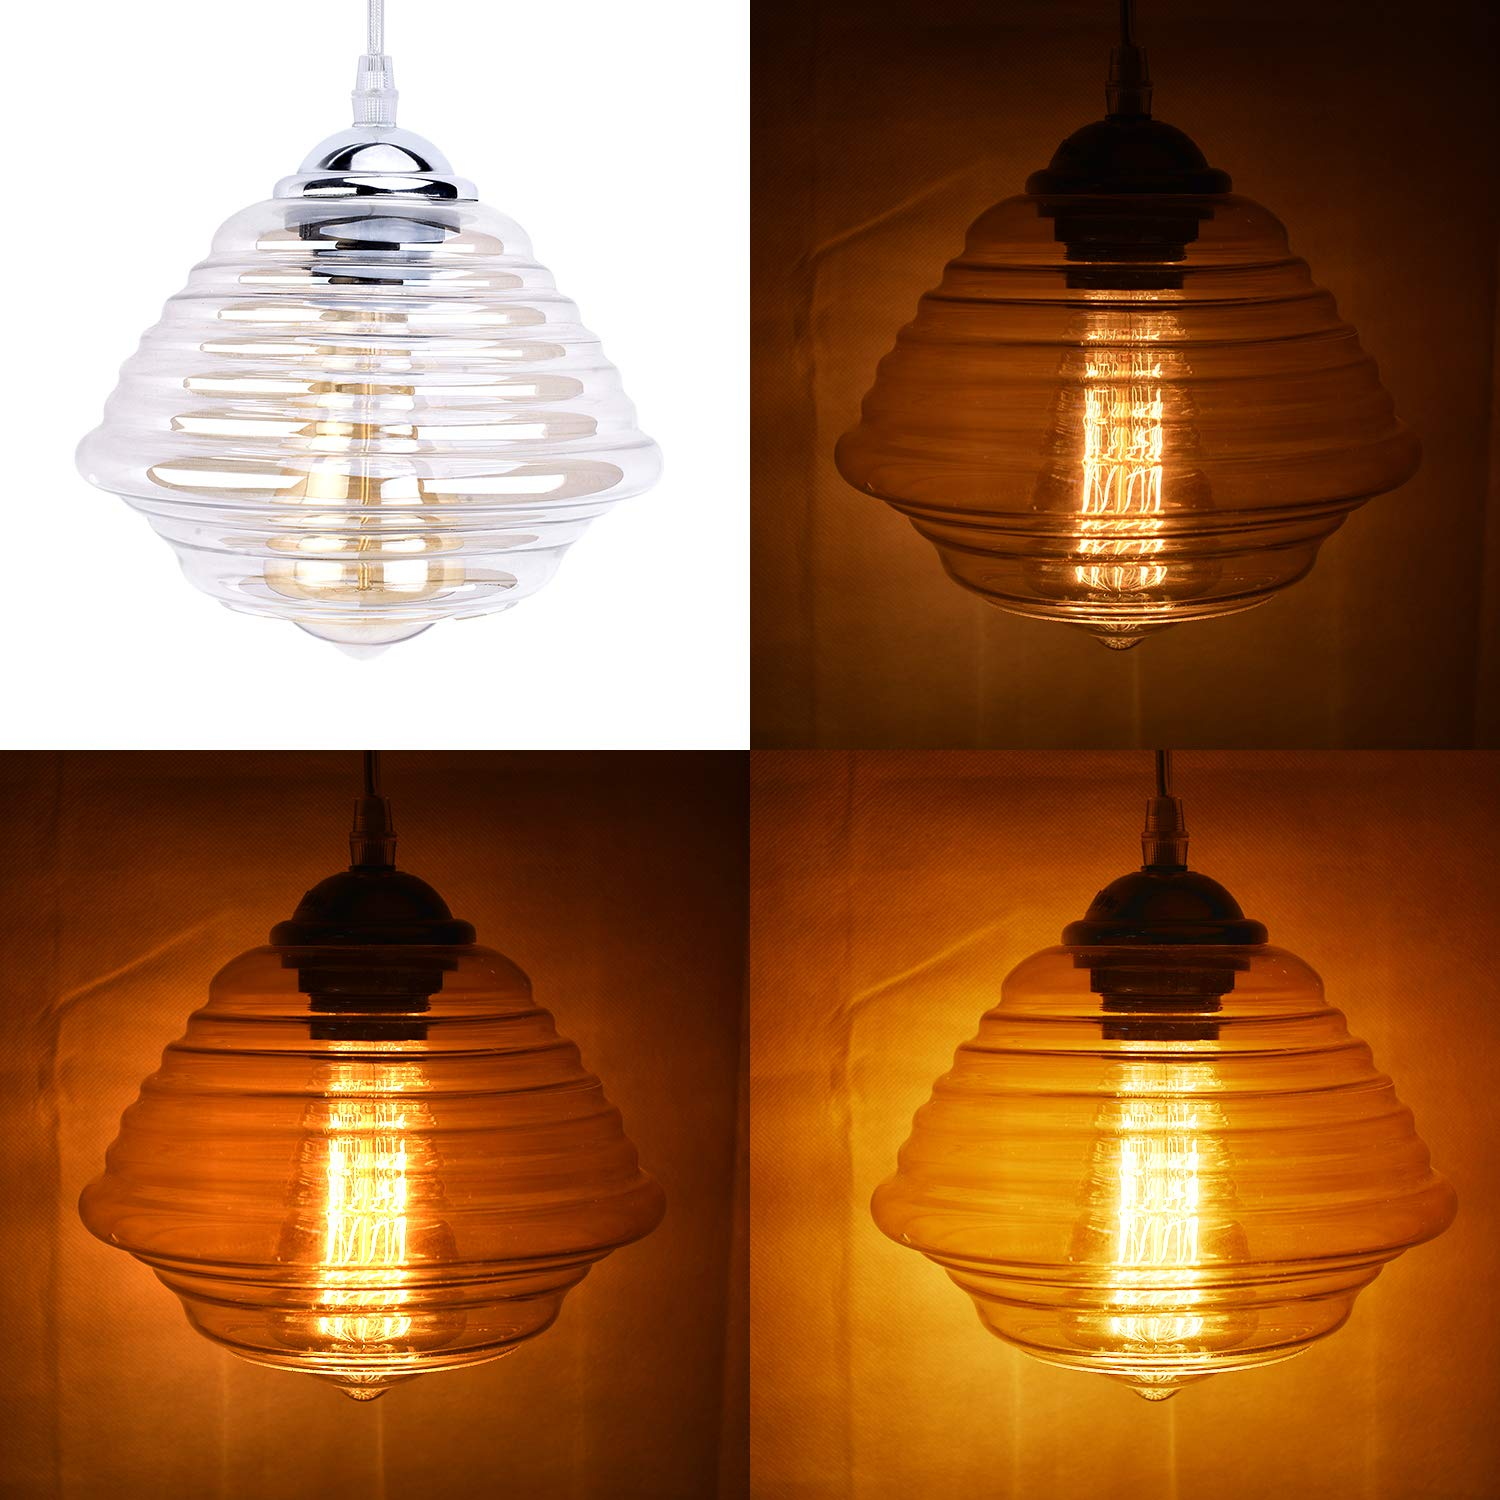 Stepeak Modern Glass Decor Cords Hanging Lighting with Plug in Cord 16.4 and on Off Dimmer Switch, Swag Pendant Lamps for Bedroom Kitchen Dinning Room